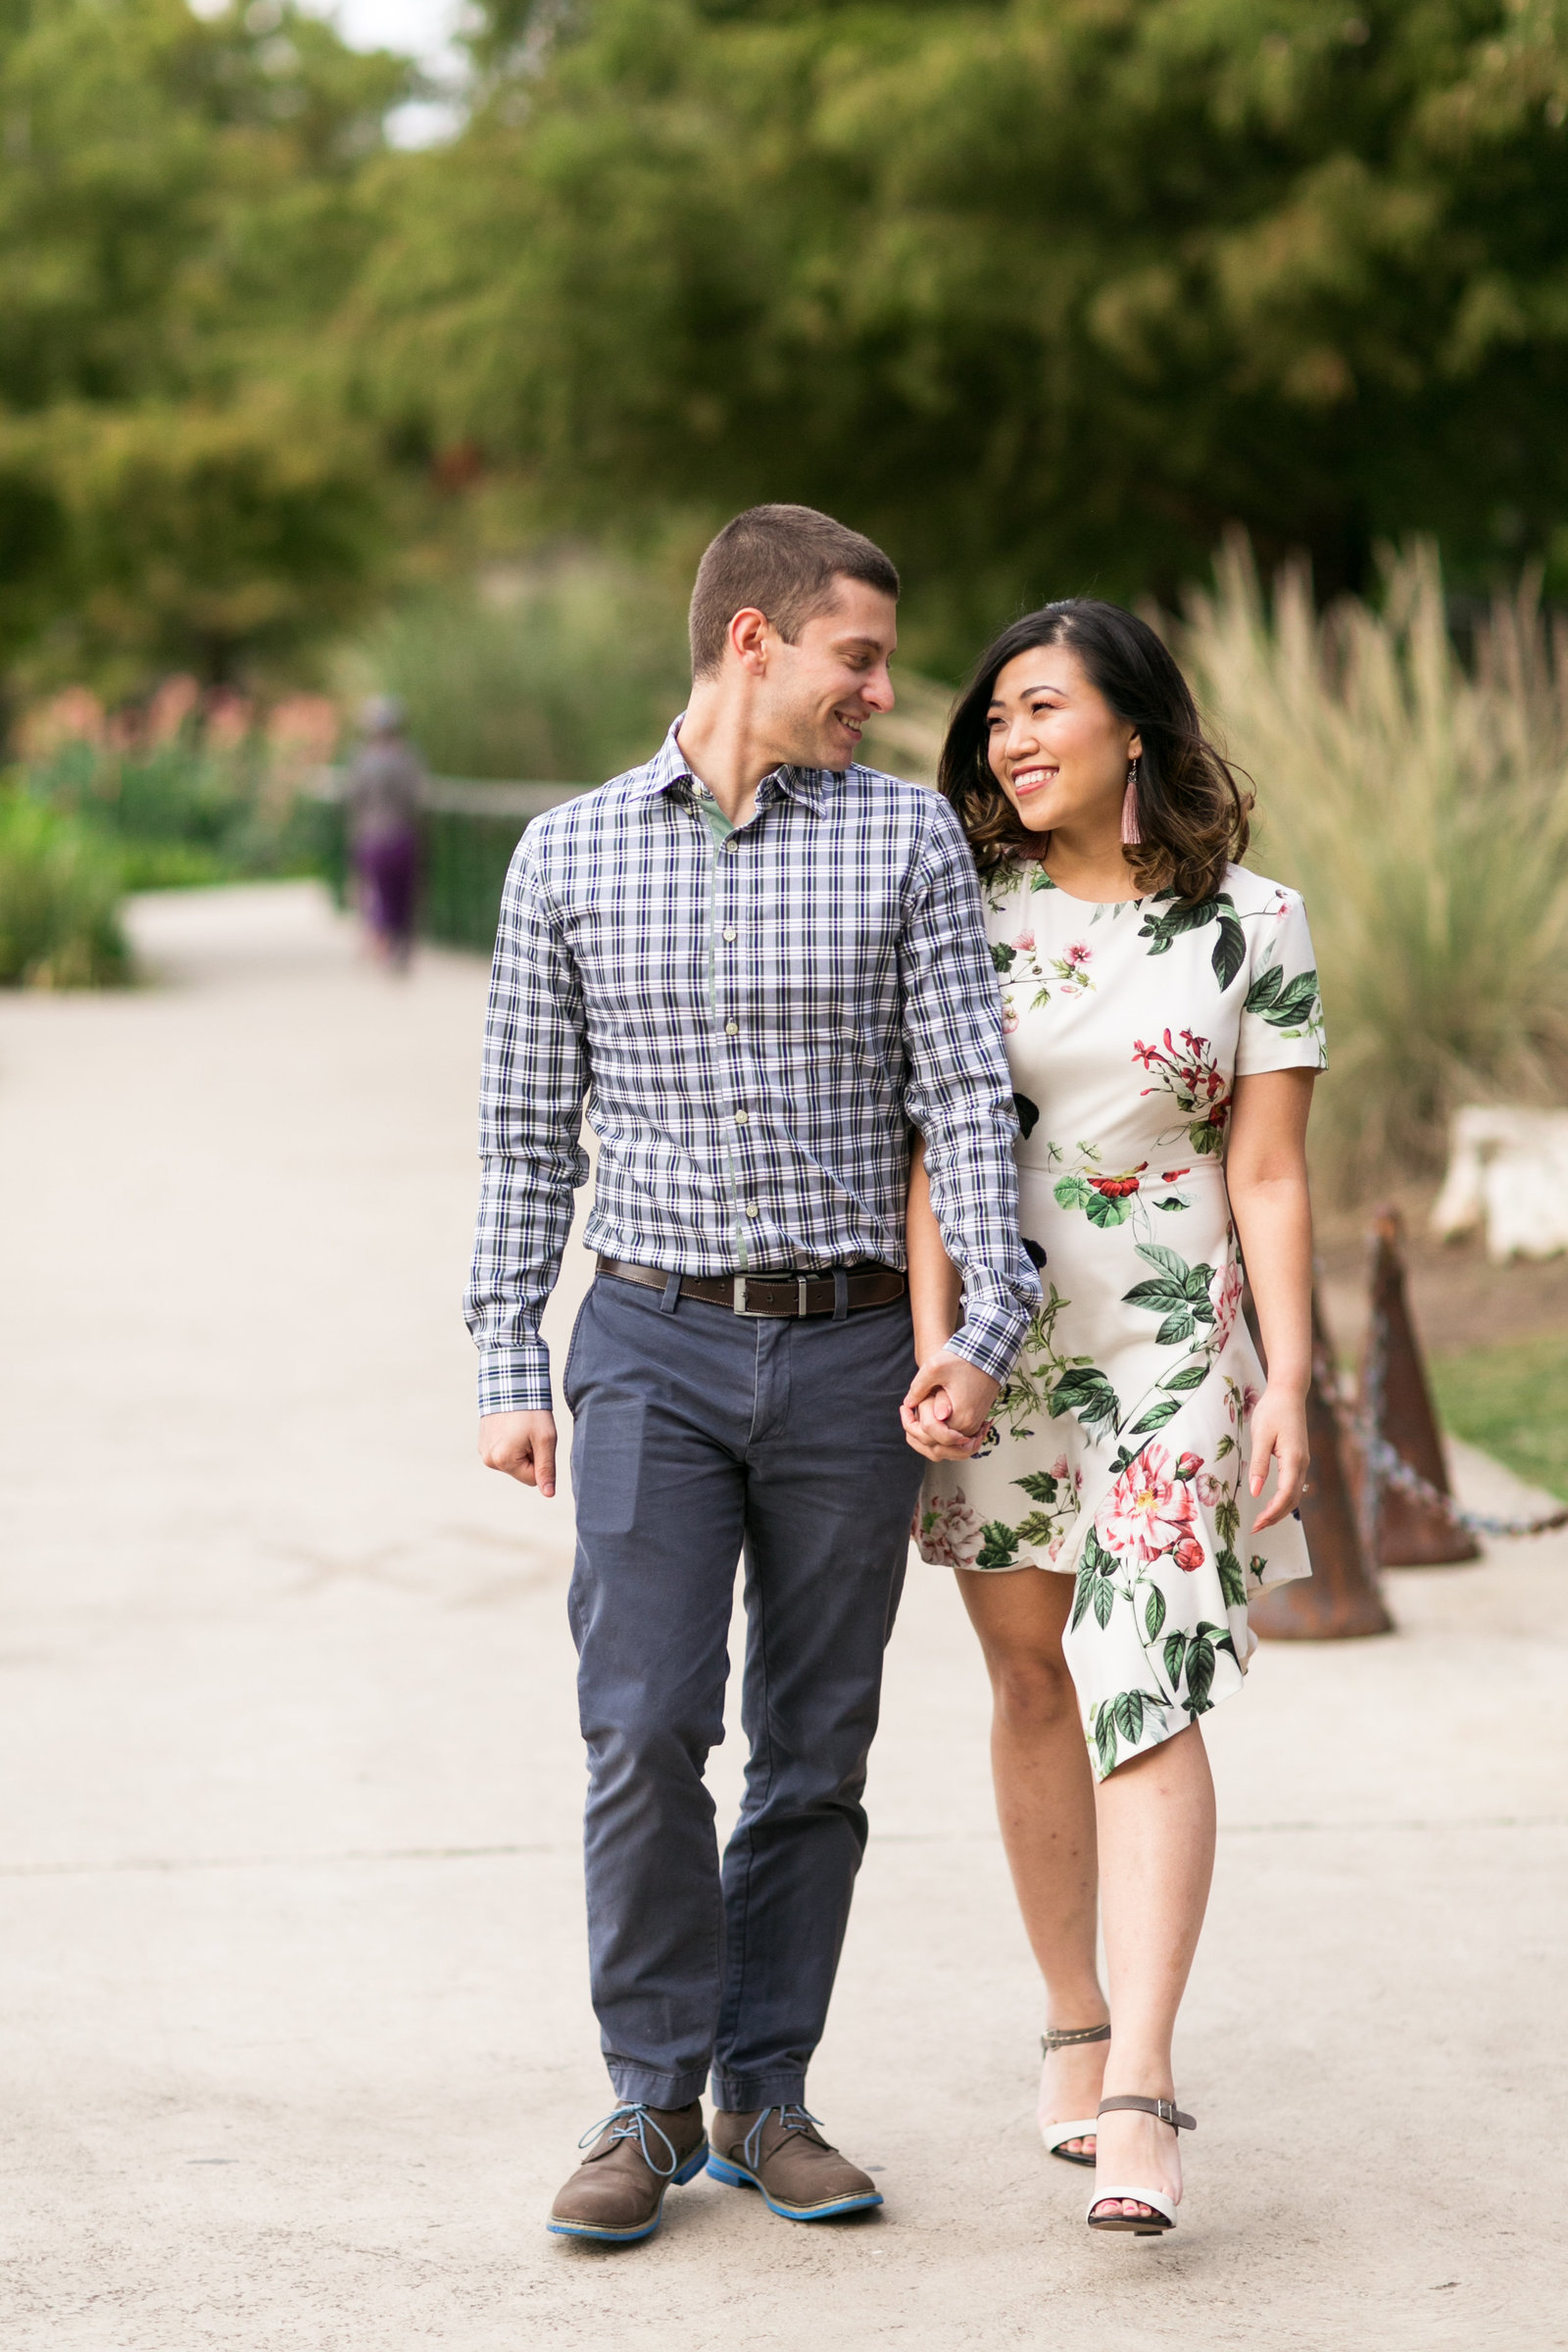 the-pearl-brewery-engagement-session-fall-october-san-antonio-texas-photo-33